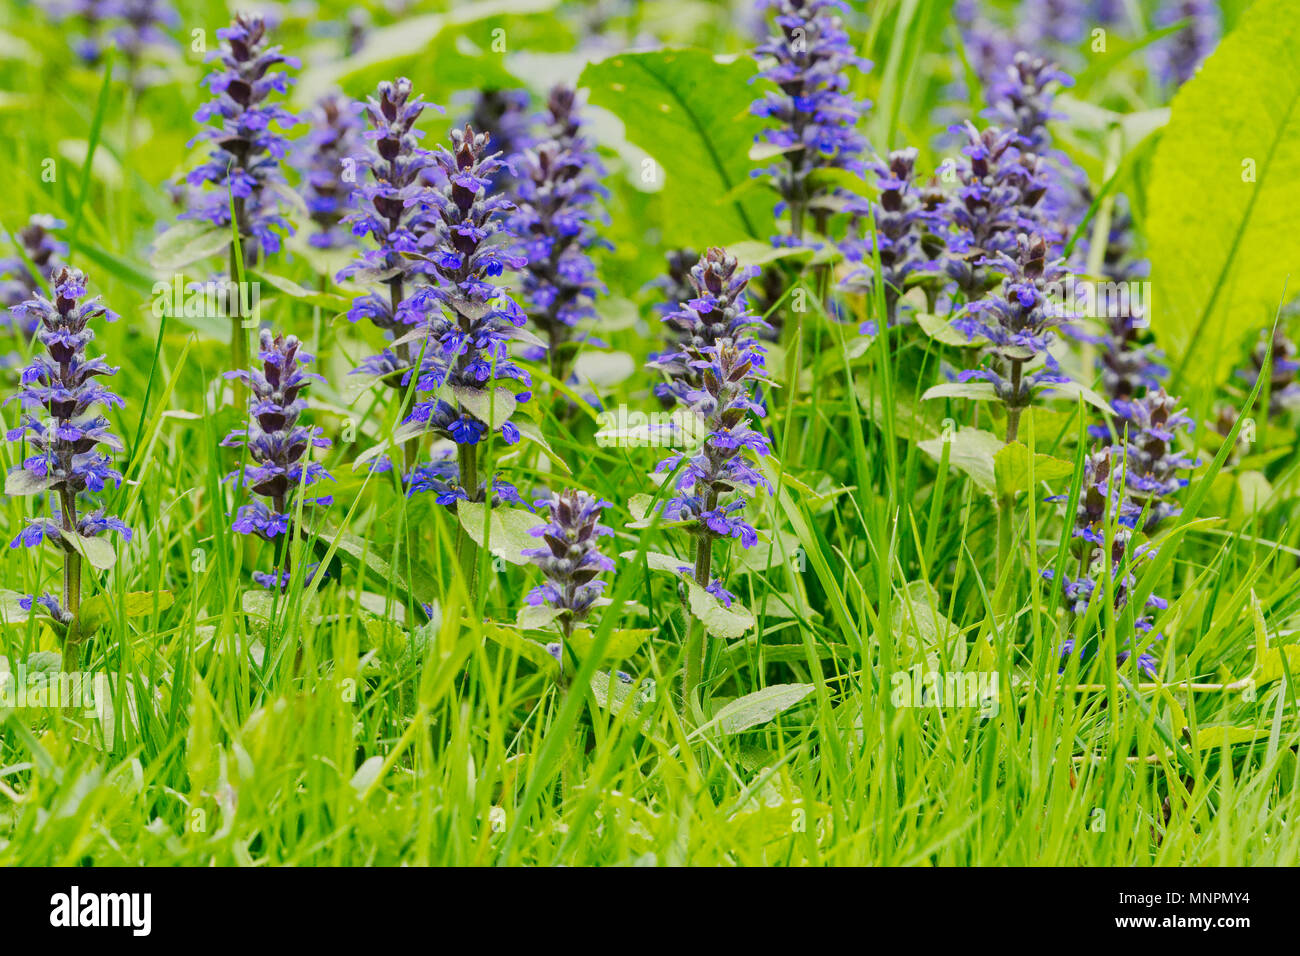 Aconitum Flower Price Genevensis Stock Photos & Genevensis Stock Images - Alamy